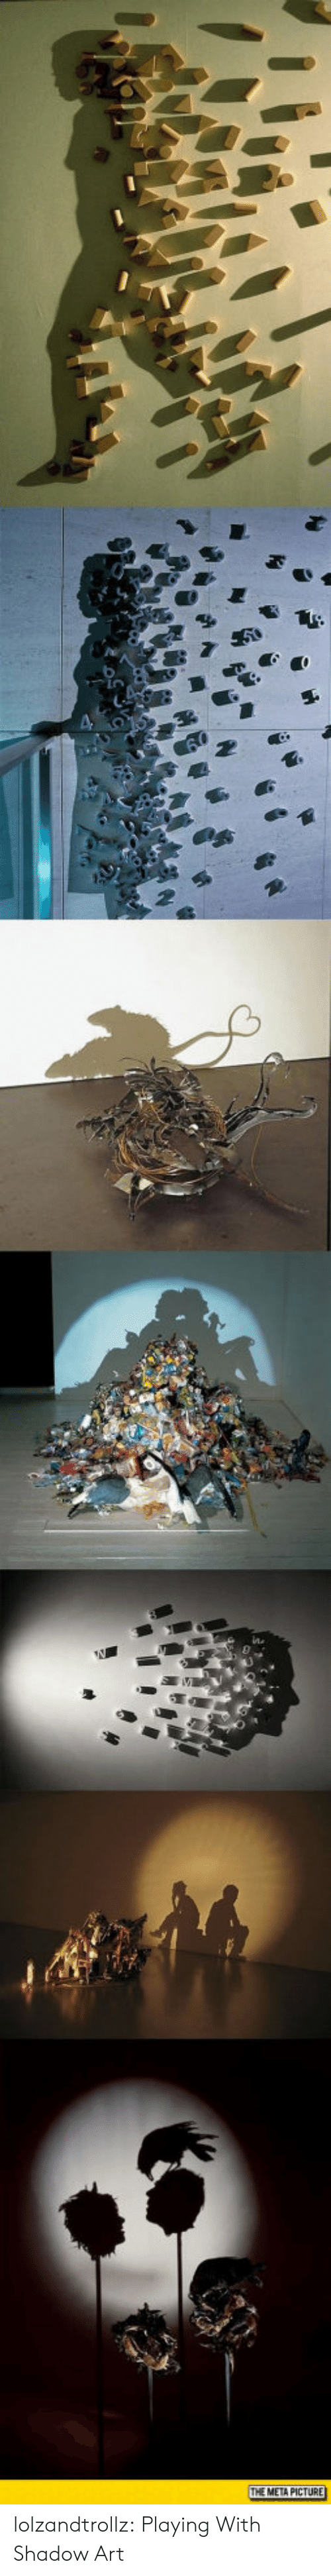 Tumblr, Blog, and Http: THE META PICTURE lolzandtrollz:  Playing With Shadow Art